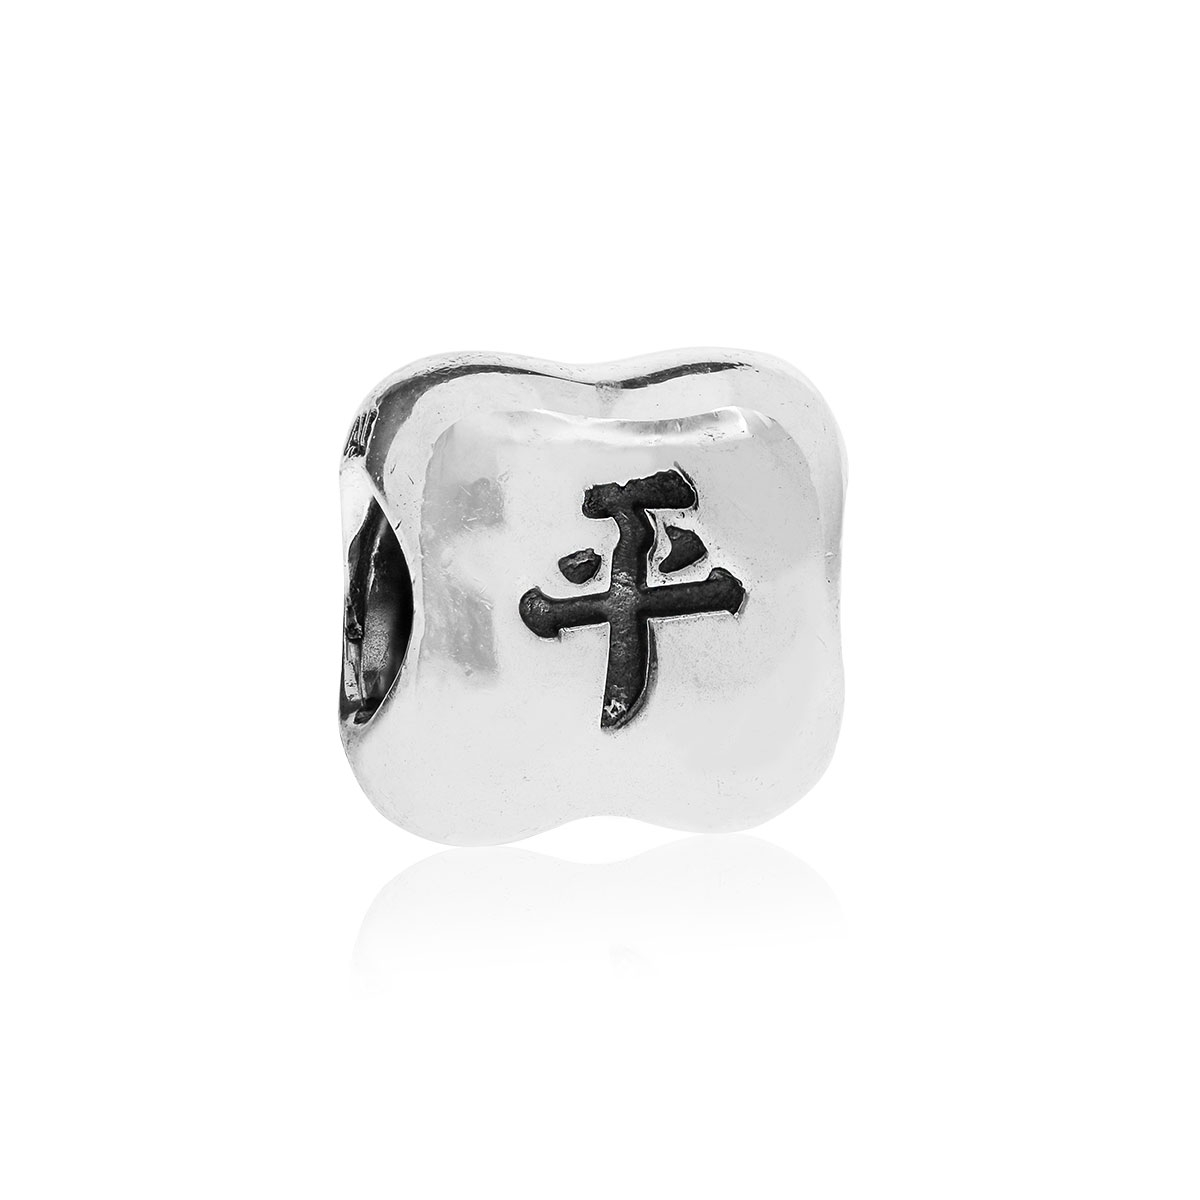 6cc2b4377 Pandora Rare 'peace' Chinese Symbol Silver Charm 790191, Retired Charms,  Pandora | JewelFirst online jewellery store